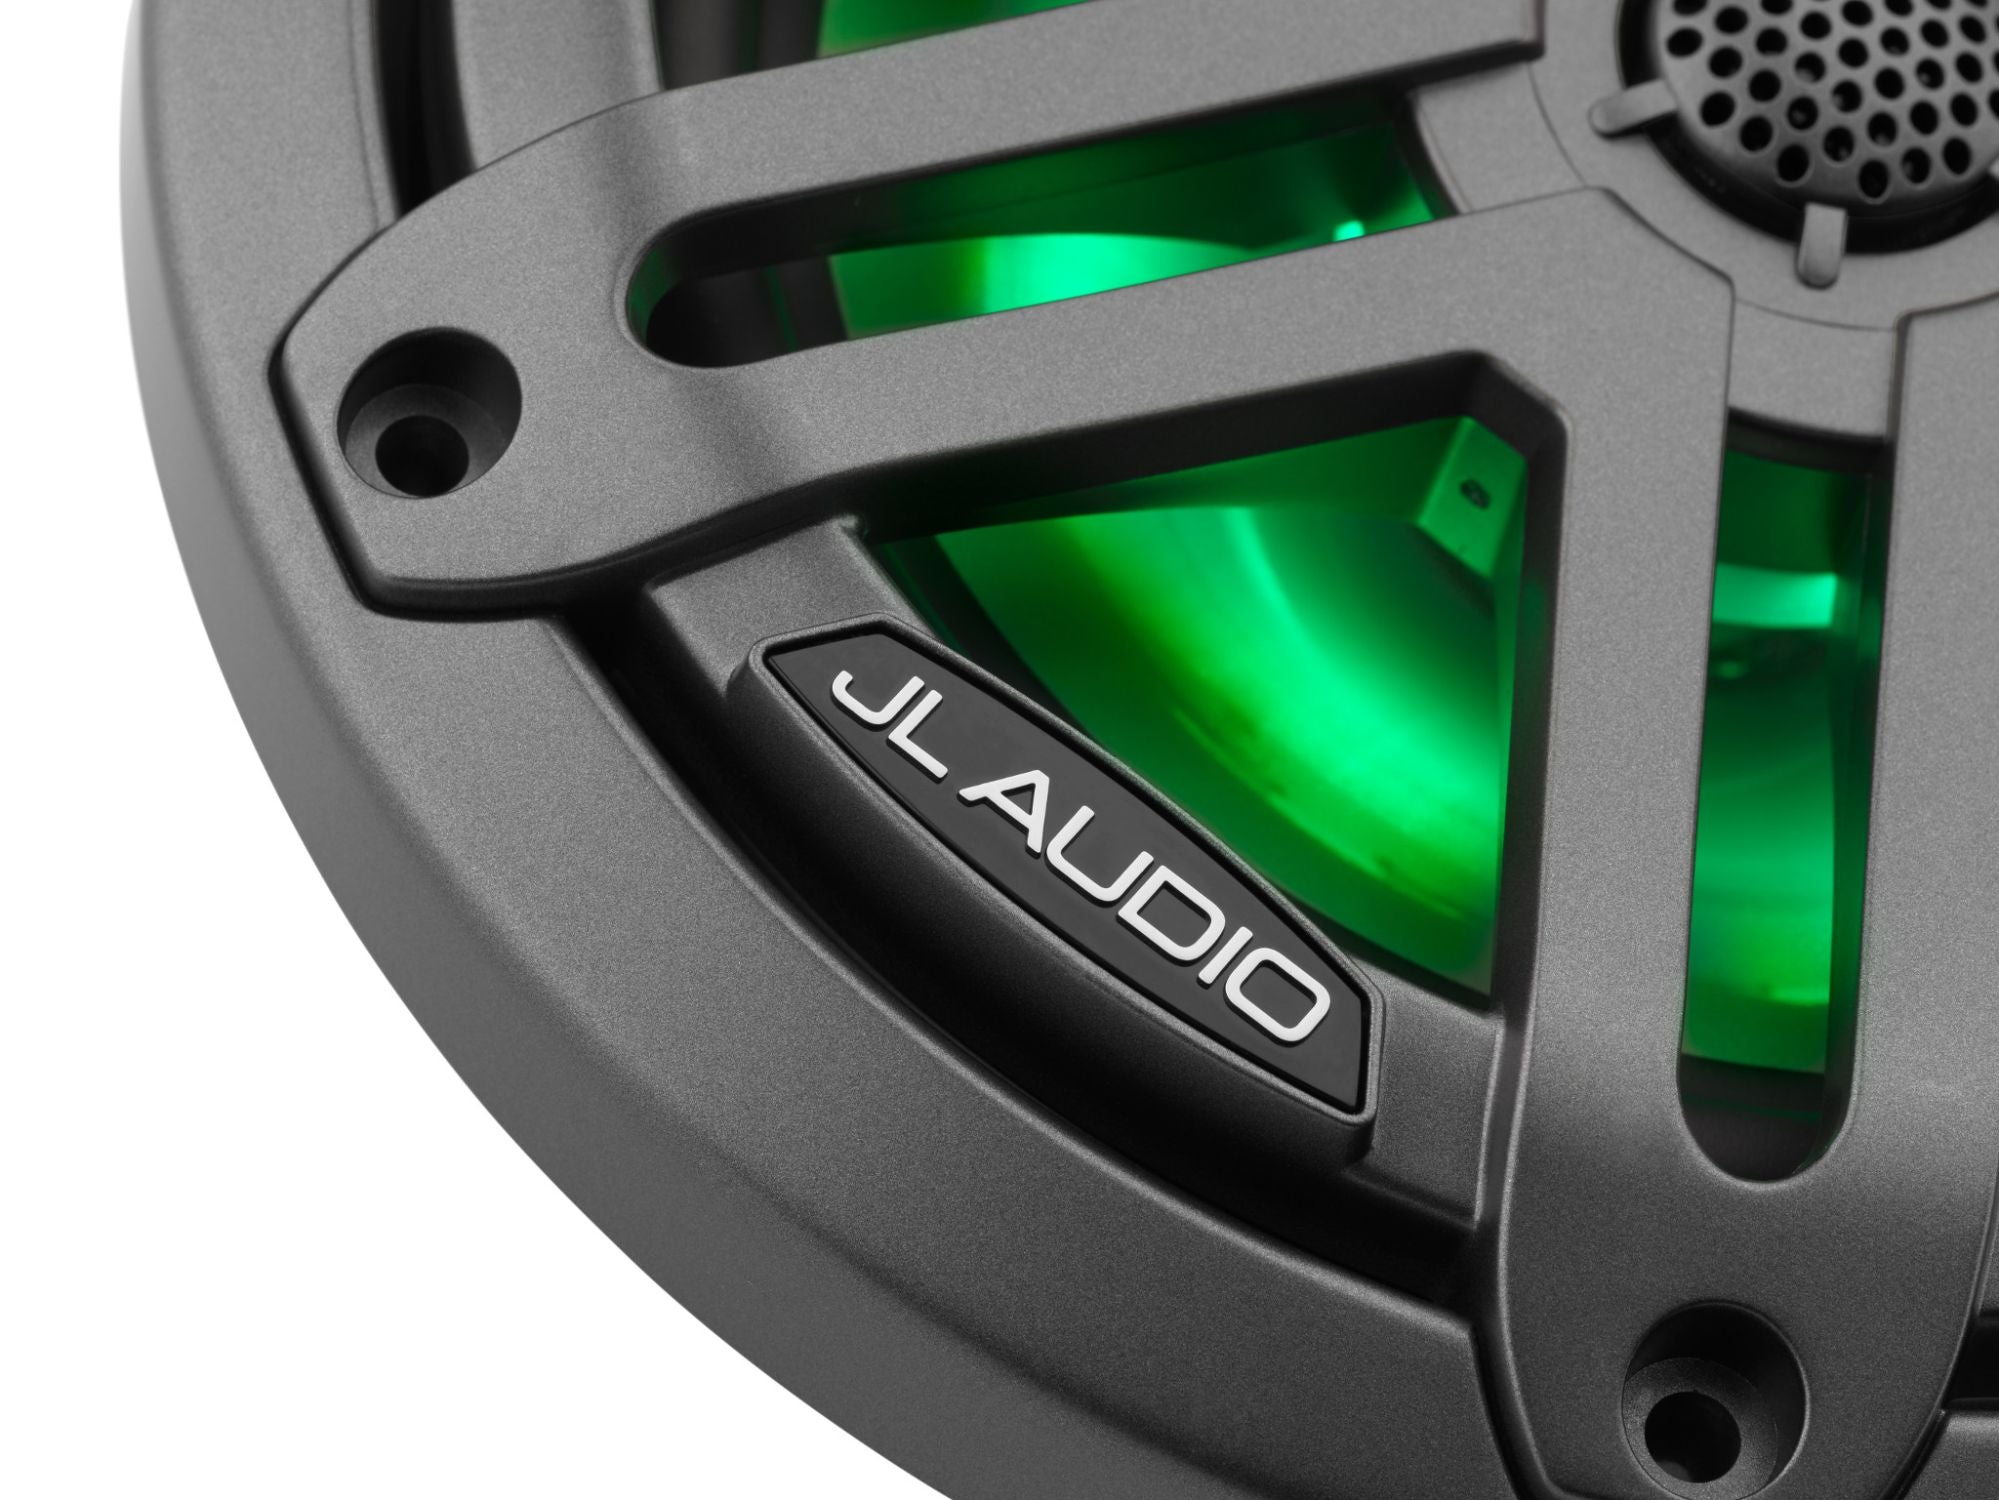 Detail of M3-650X-S-Gm-i Coaxial Speaker Lit with Green